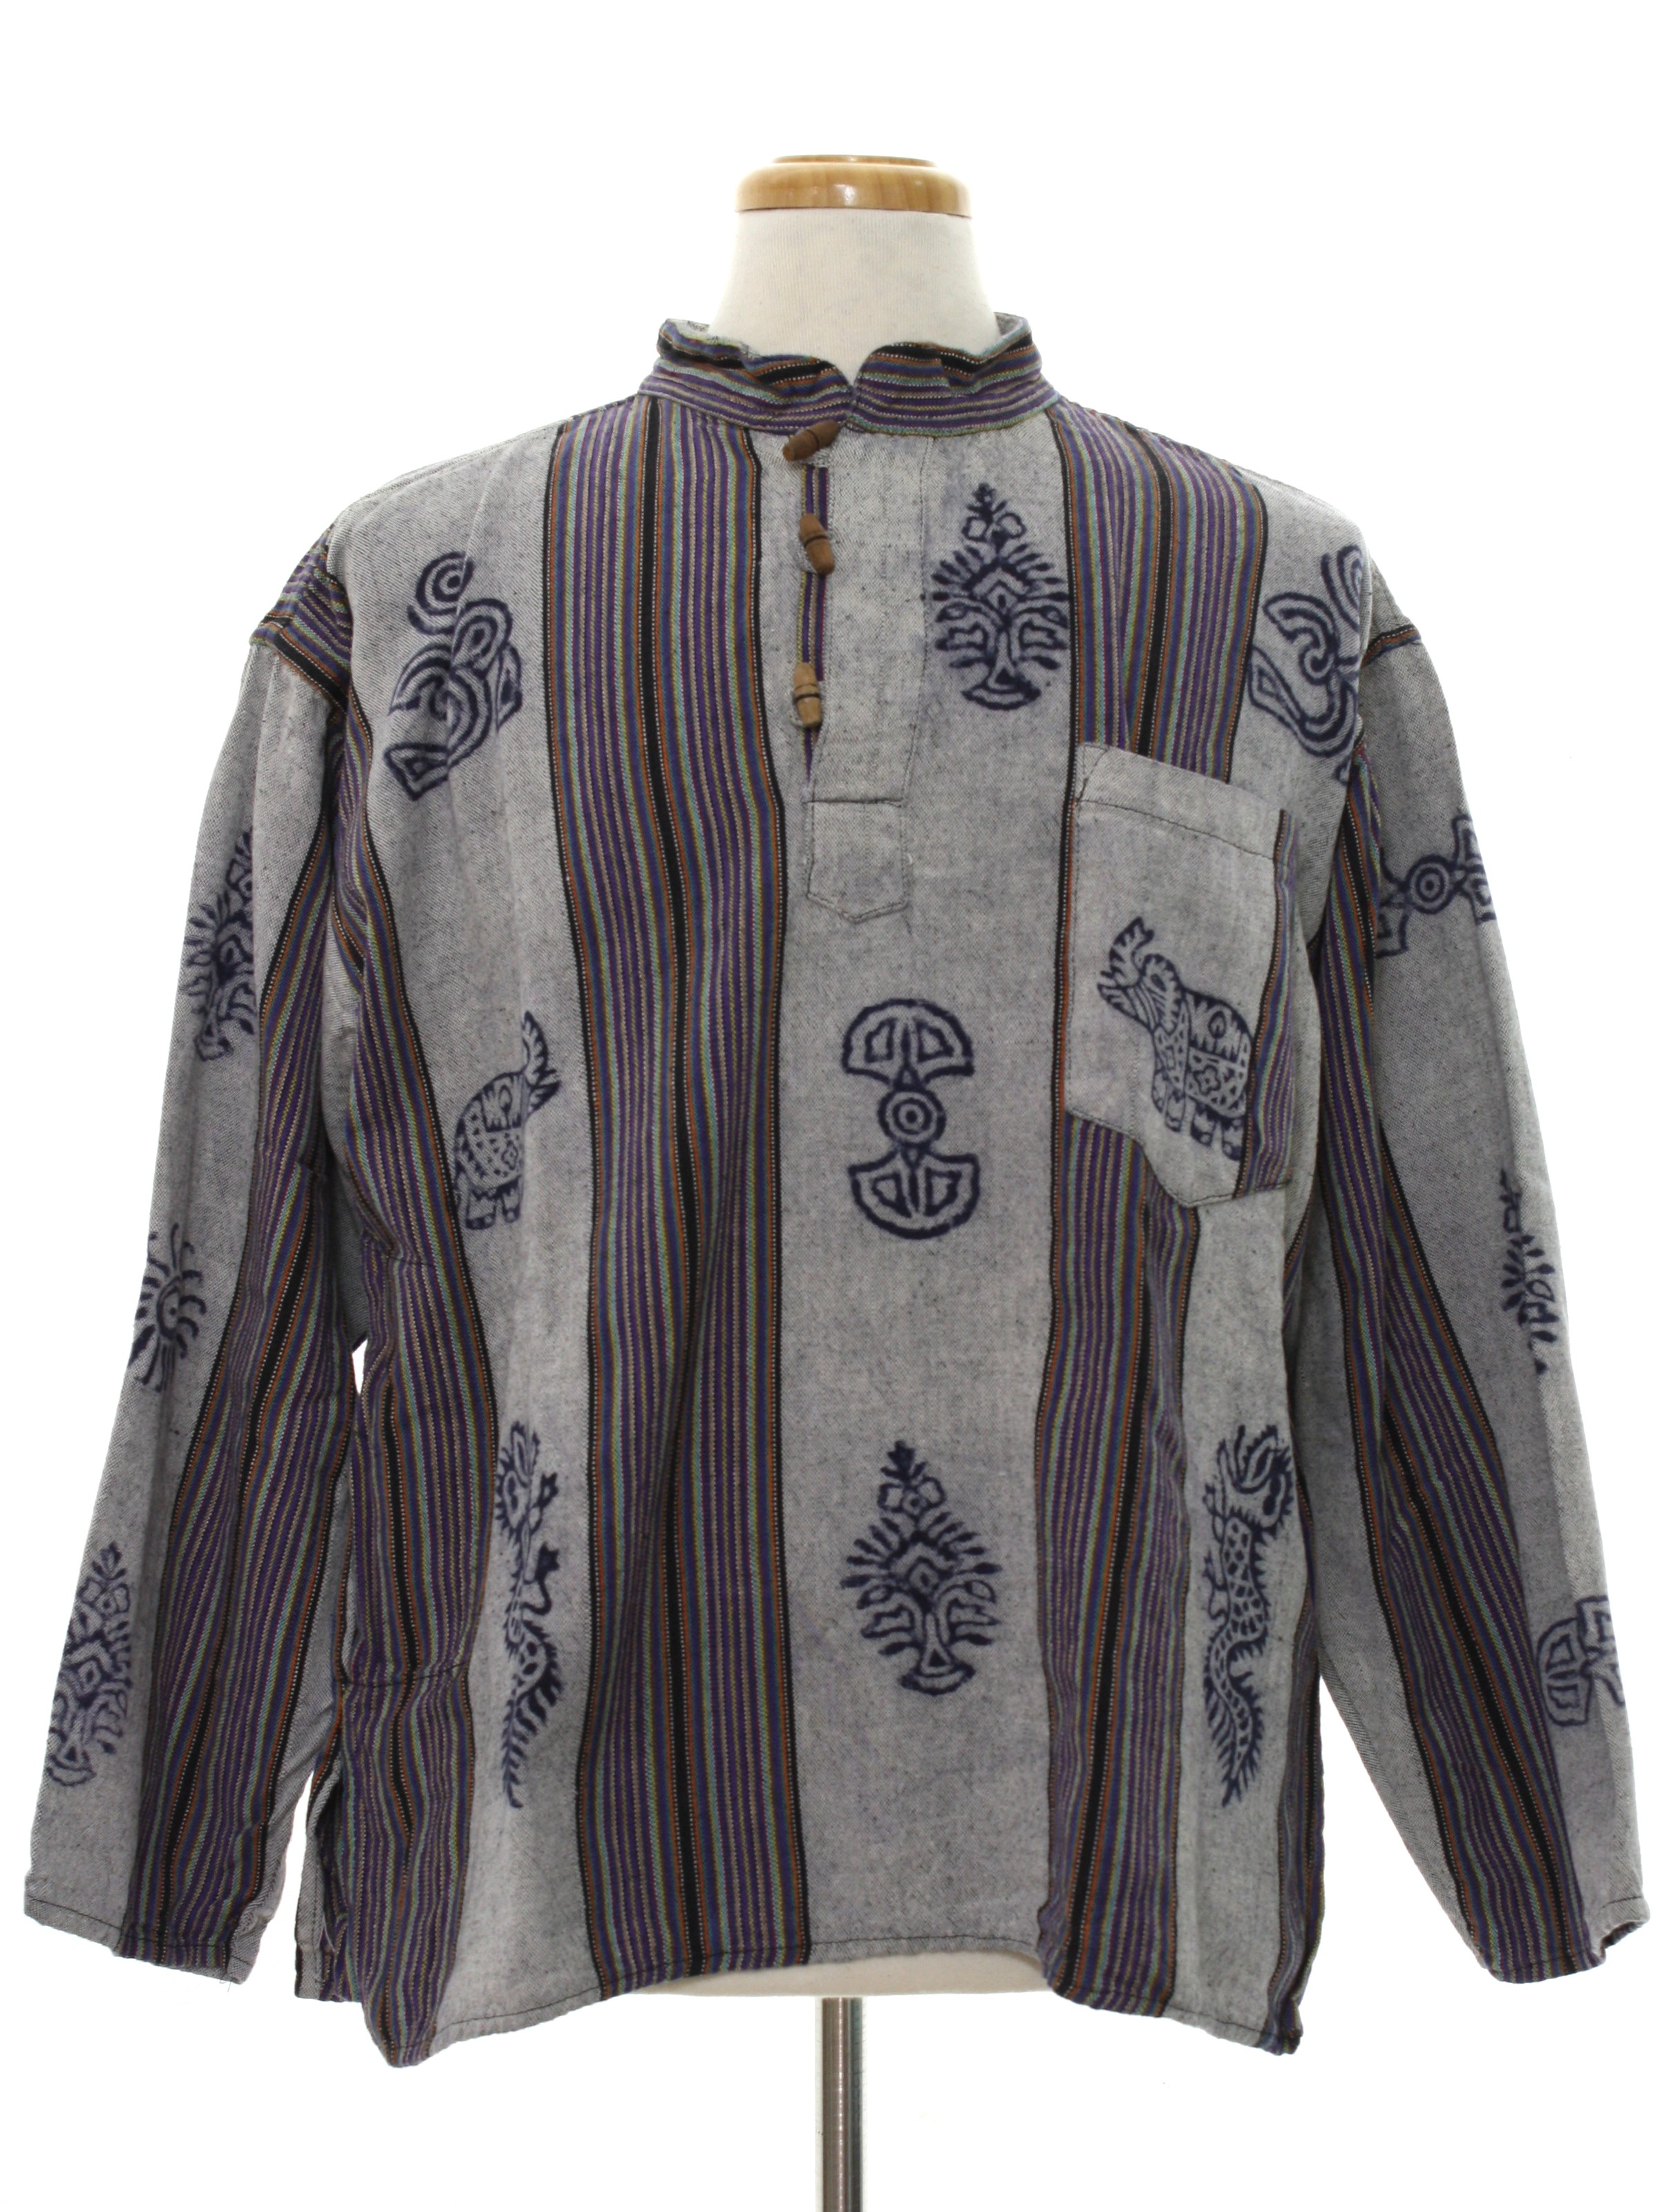 Retro 80s Hippie Shirt (Missing Label) : 80s -Missing Label- Mens ...